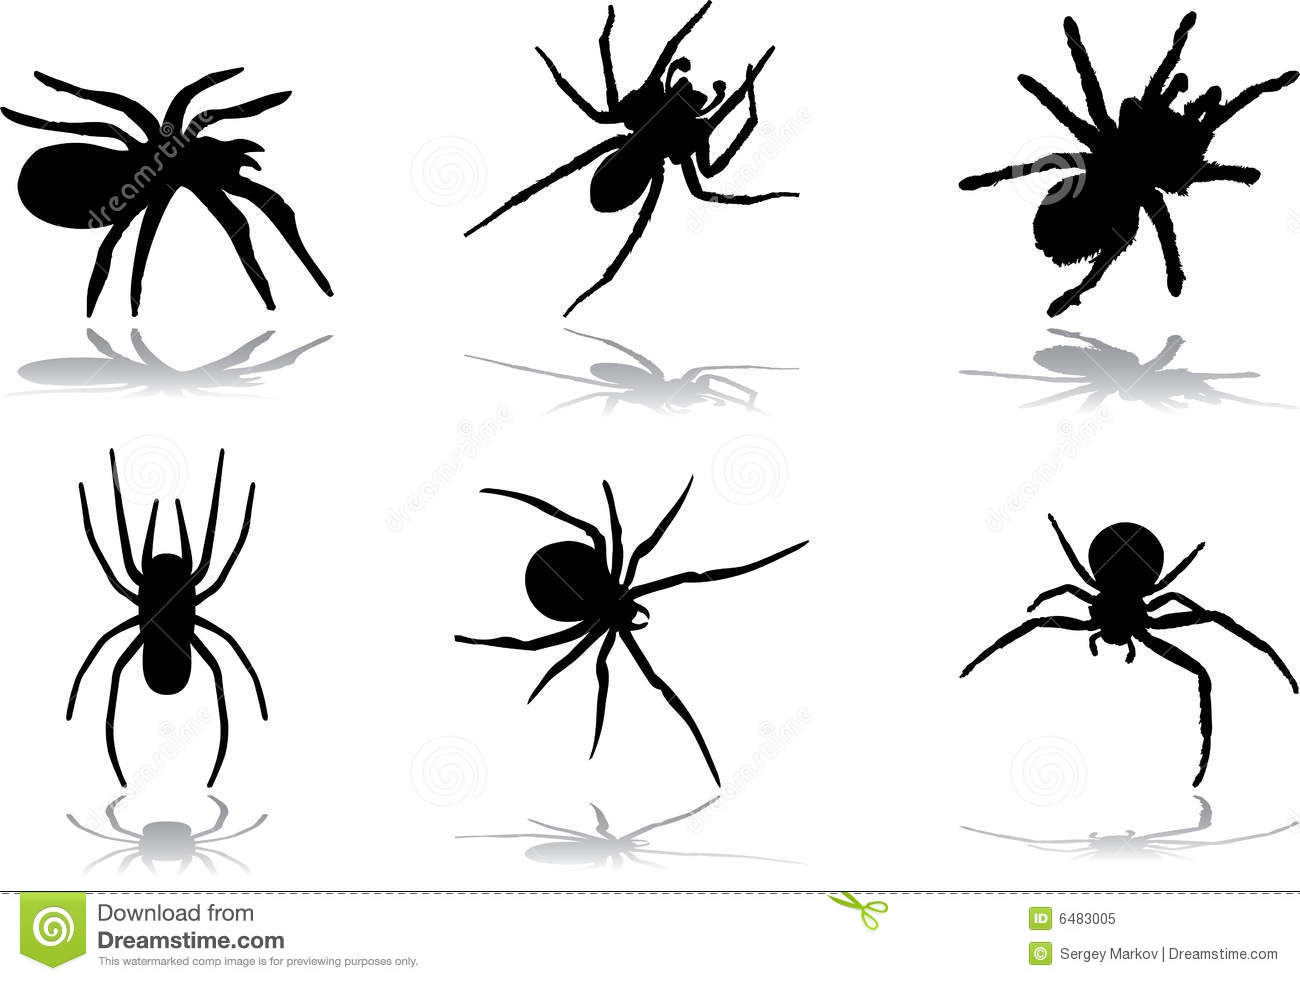 77. Spiders for Halloween